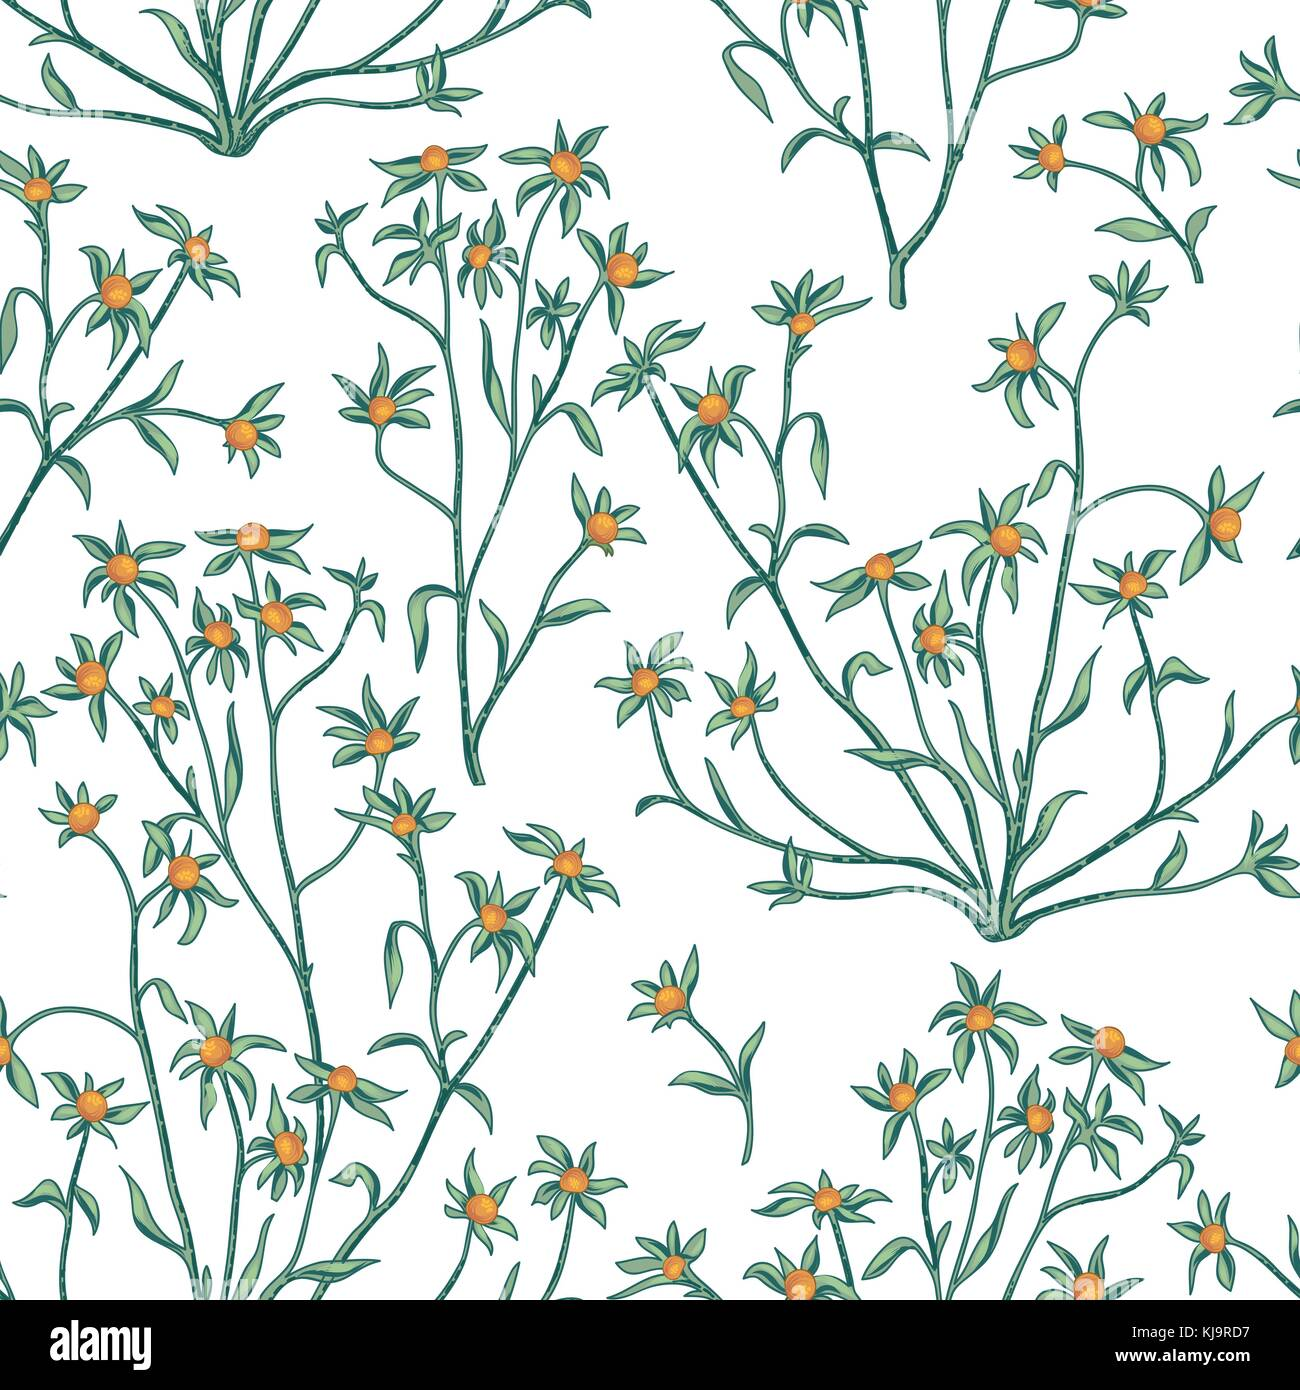 Floral Leaves And Berry Seamless Pattern Wild Nature Retro Background Flourish Wallpaper With Plants